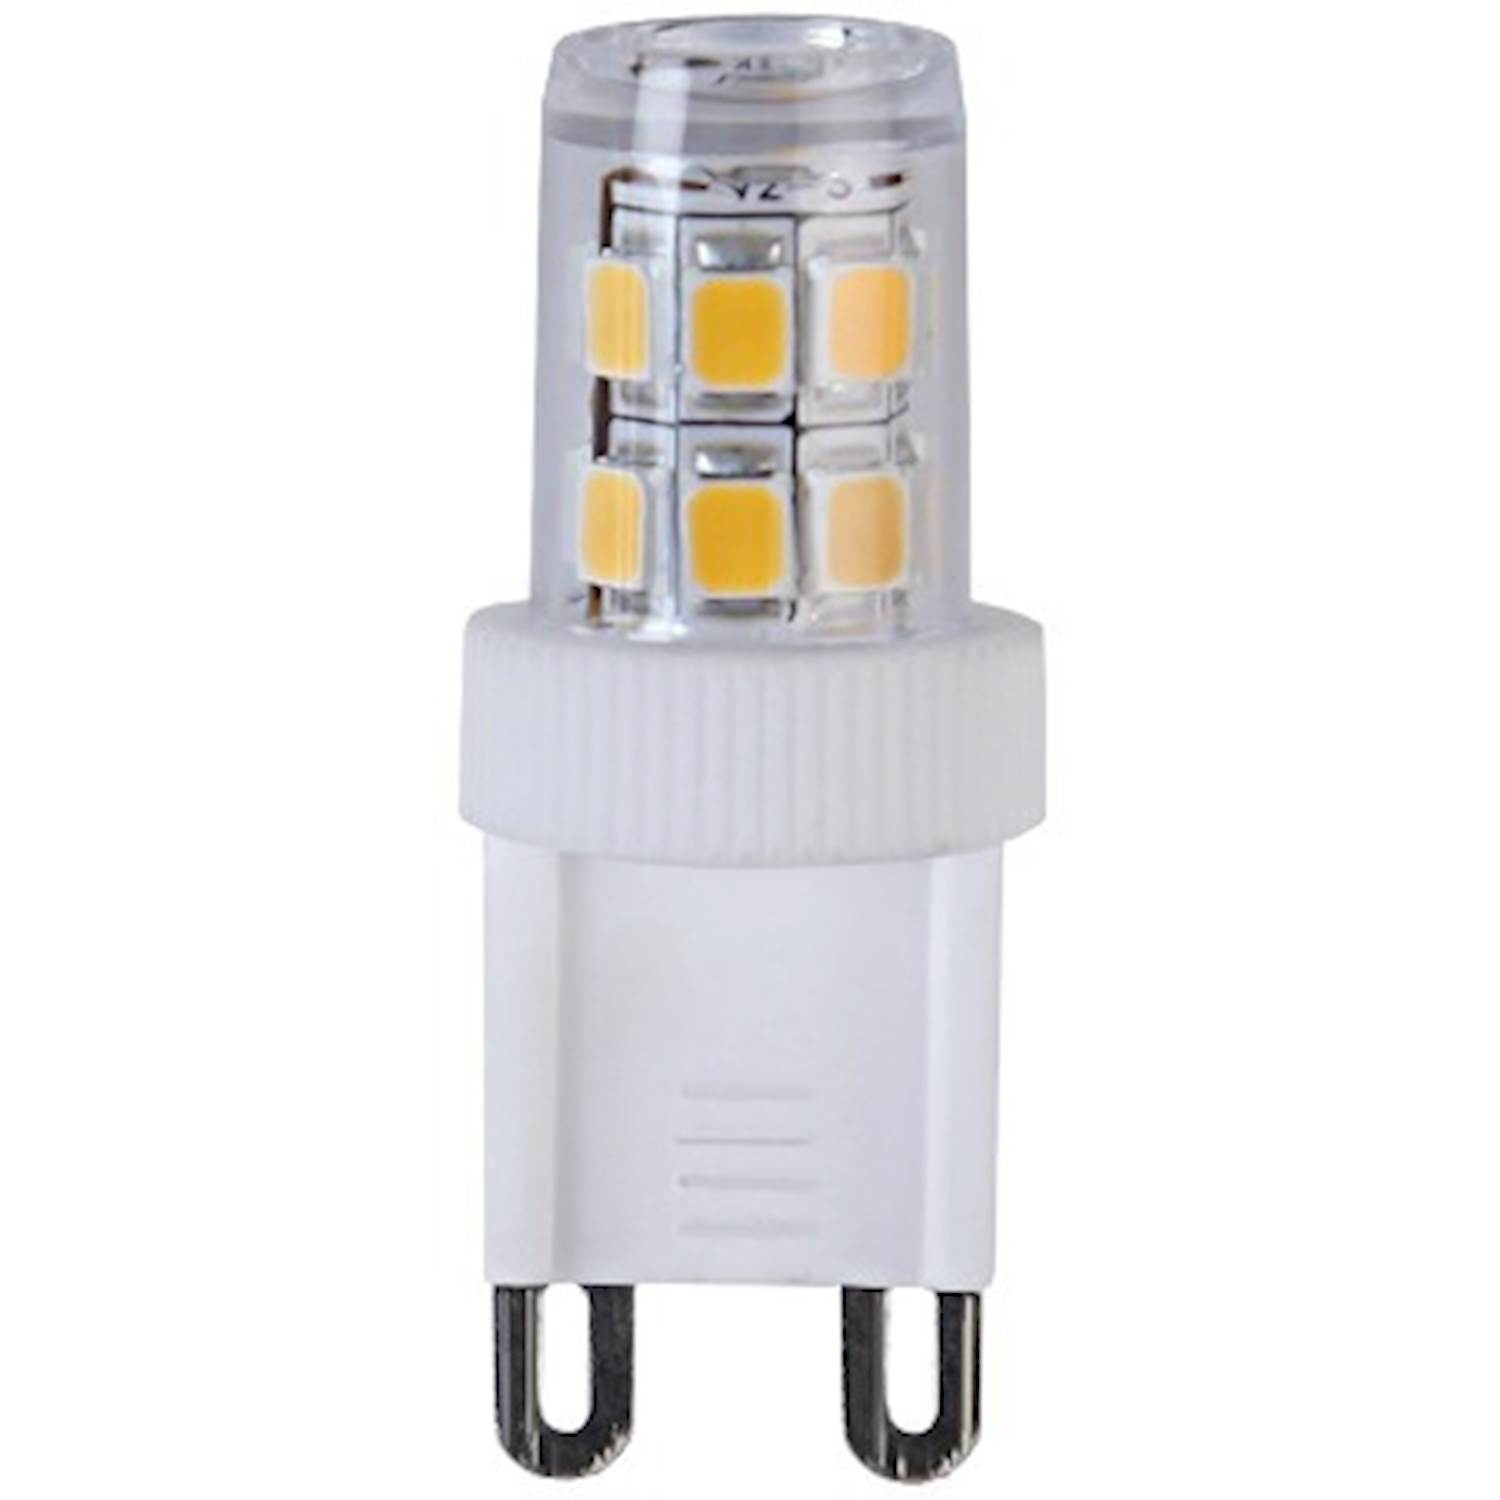 Star Trading 344-04 LED-lampa G9 G9